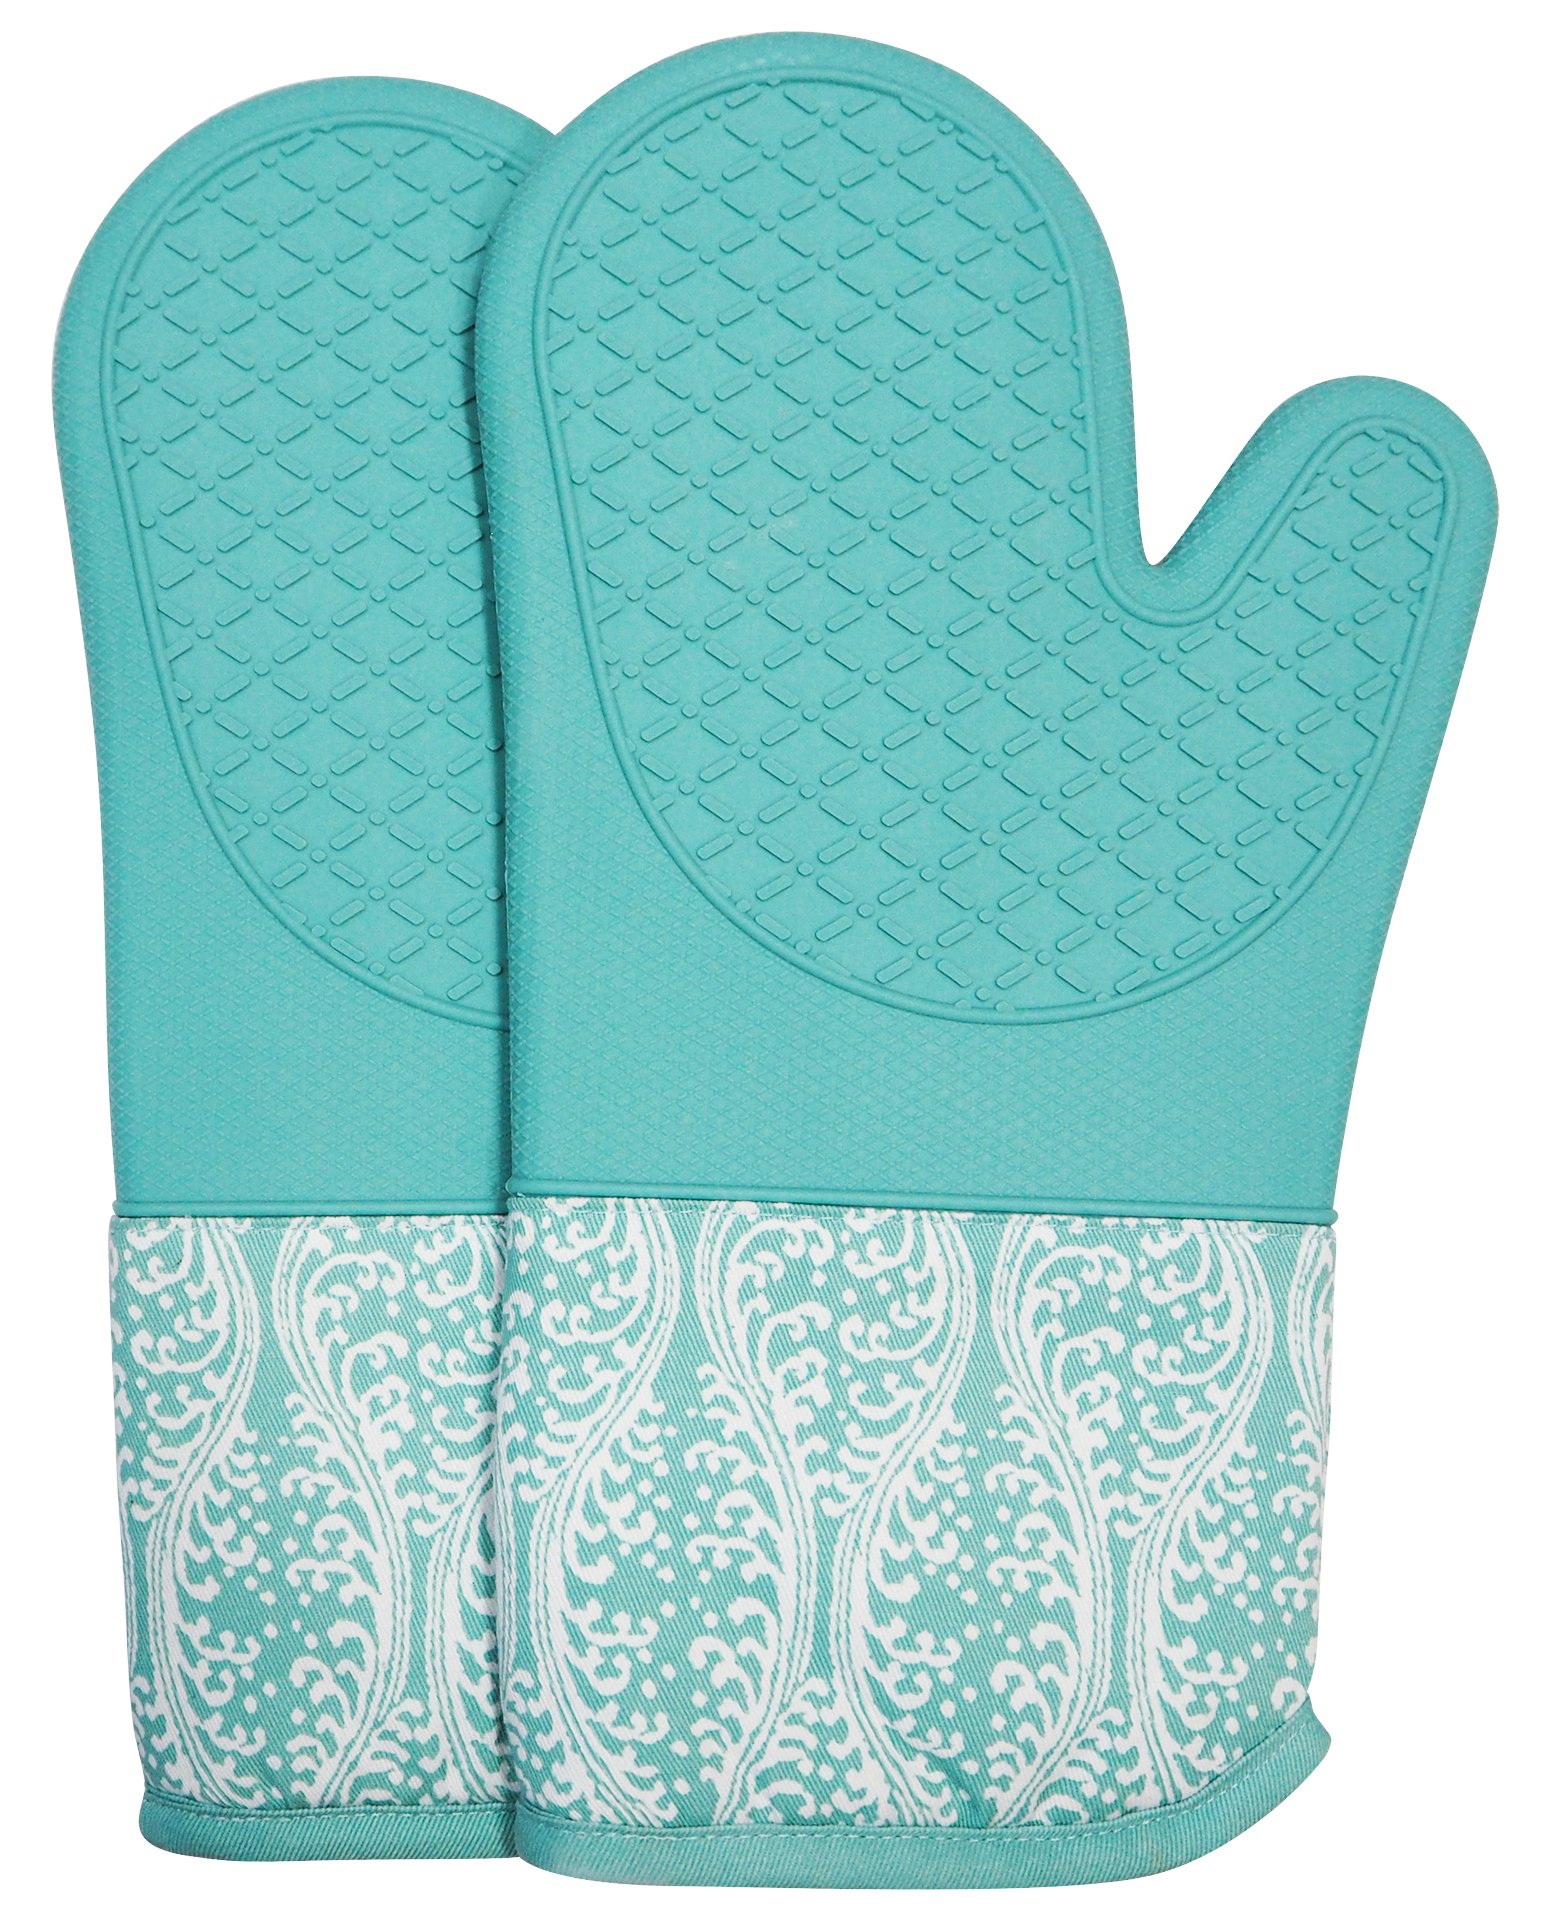 DETA HOME Silicone Oven Mitts with Quilted Cotton Lining - Professional Heat Resistant Pot Holders (Light blue)